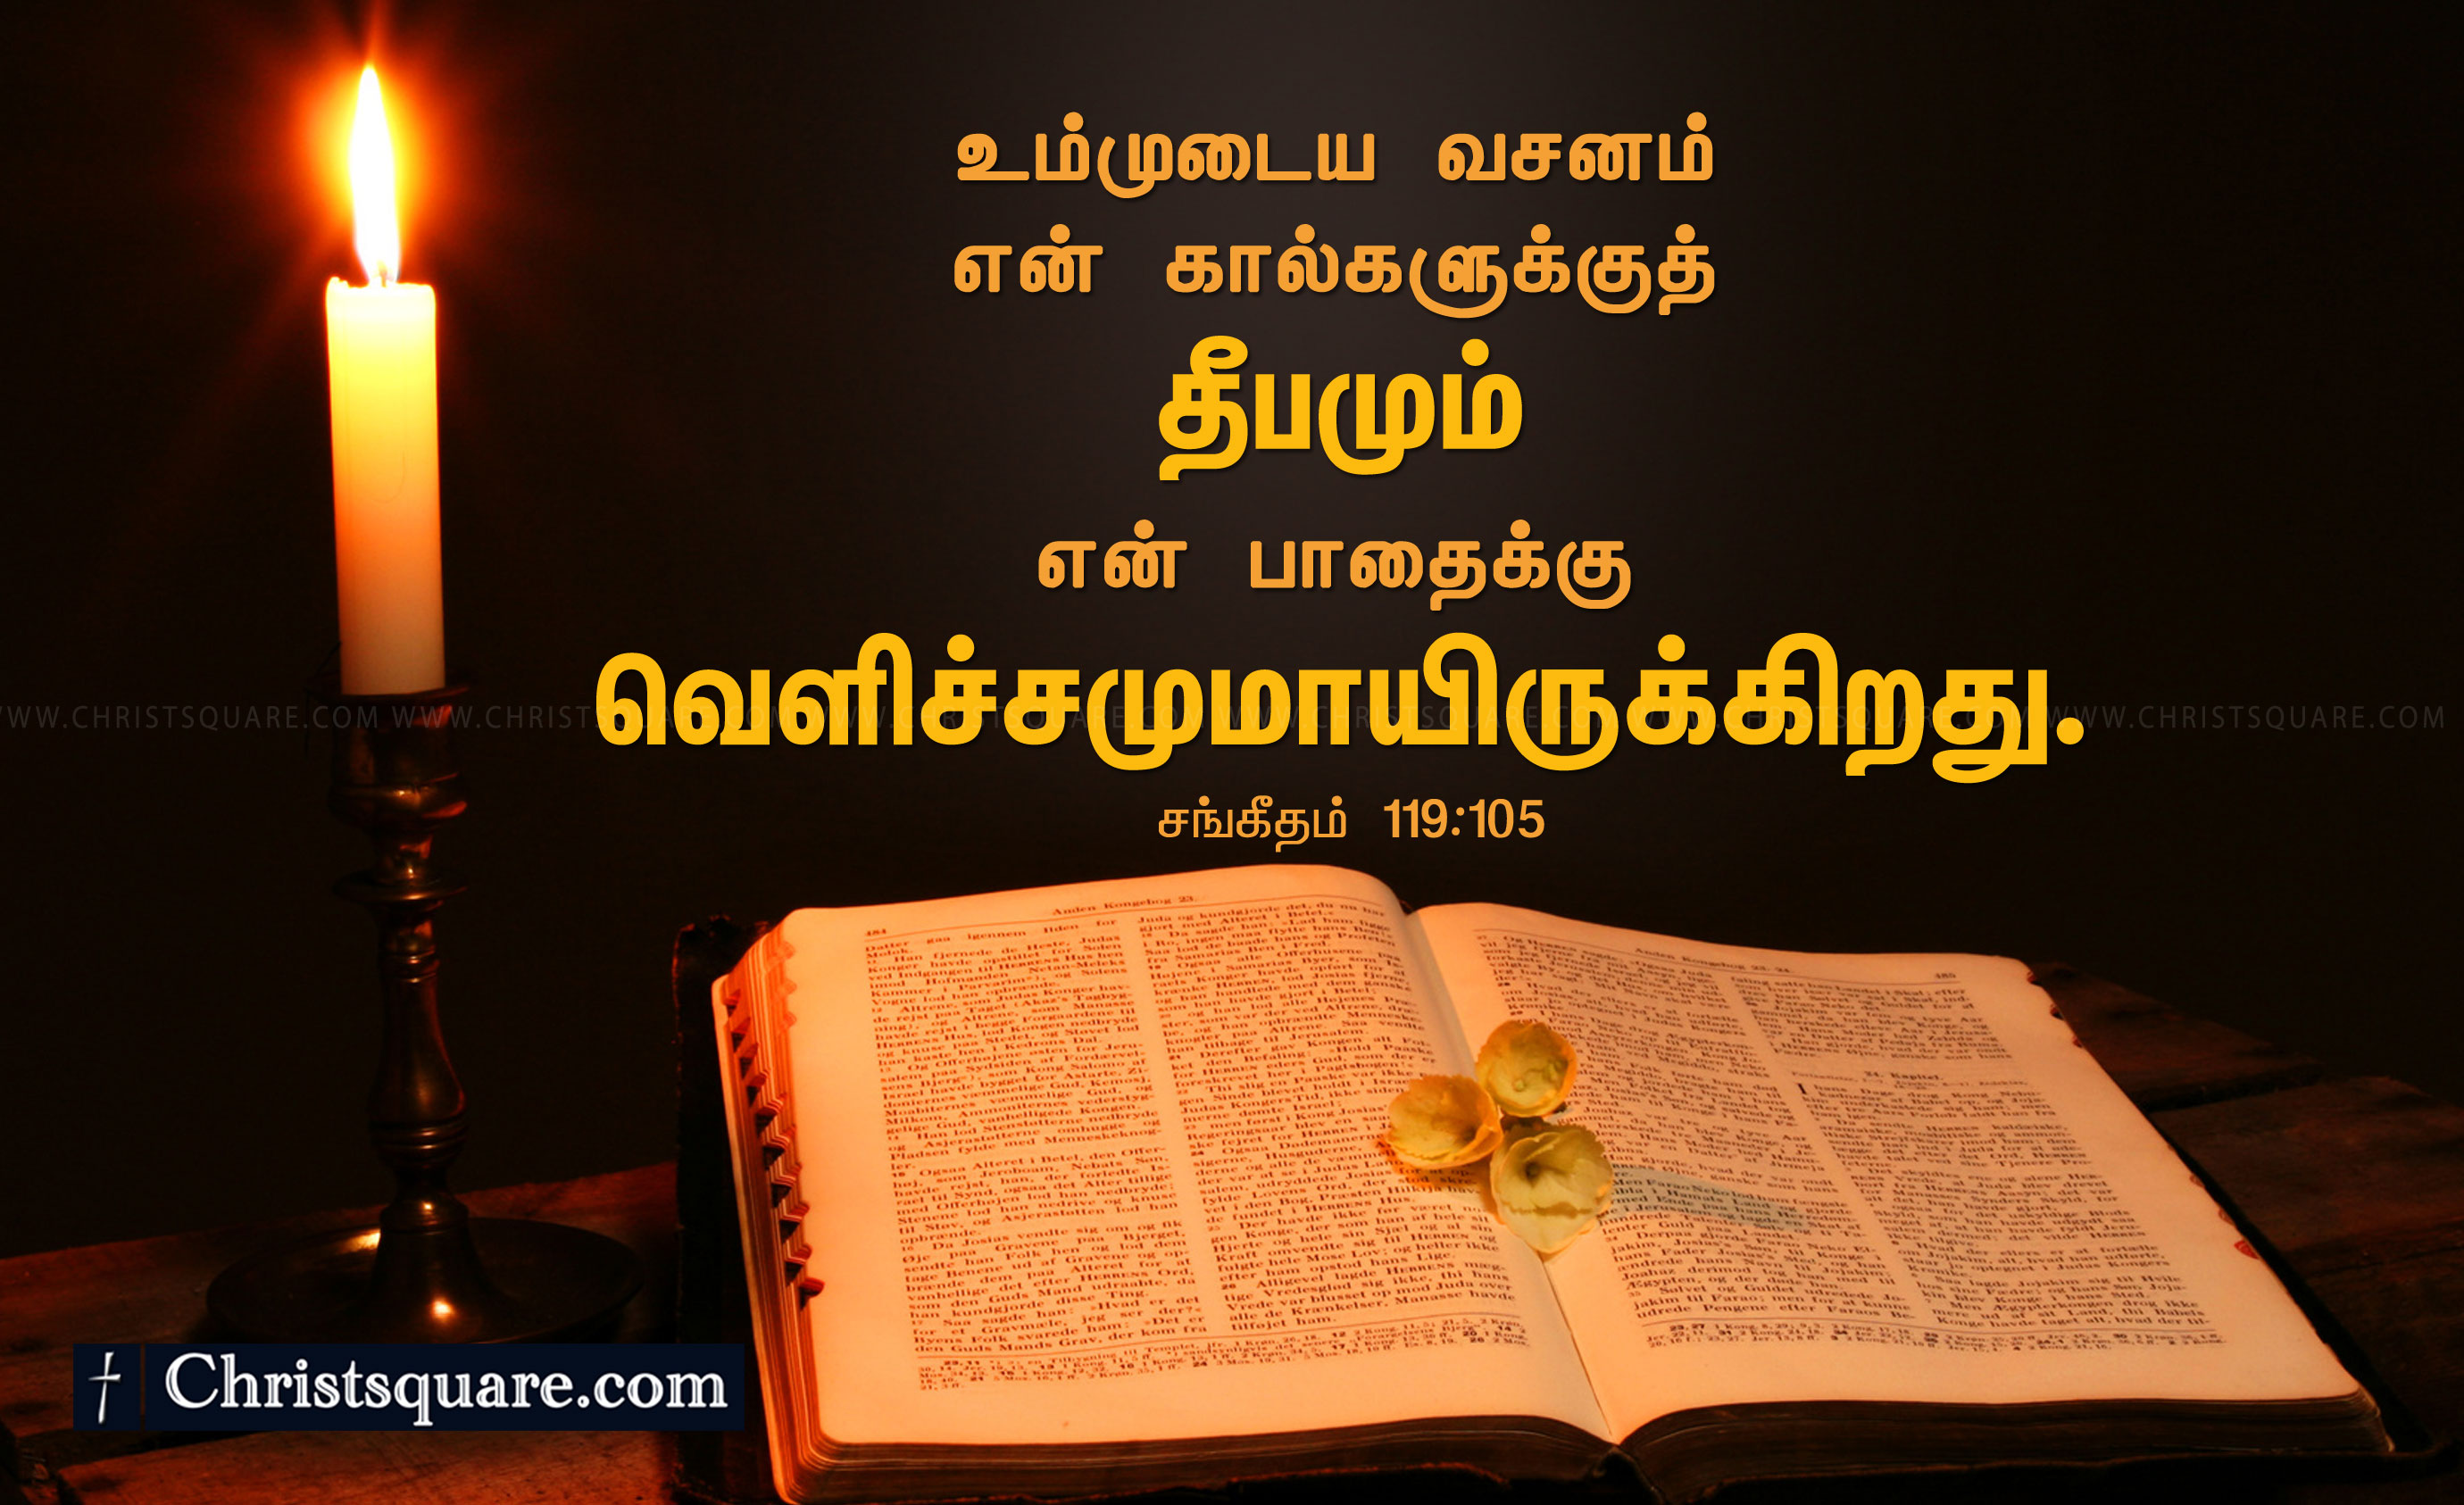 Motivational Sports Quotes Wallpaper Download Tamil Bible Words Wallpaper Gallery